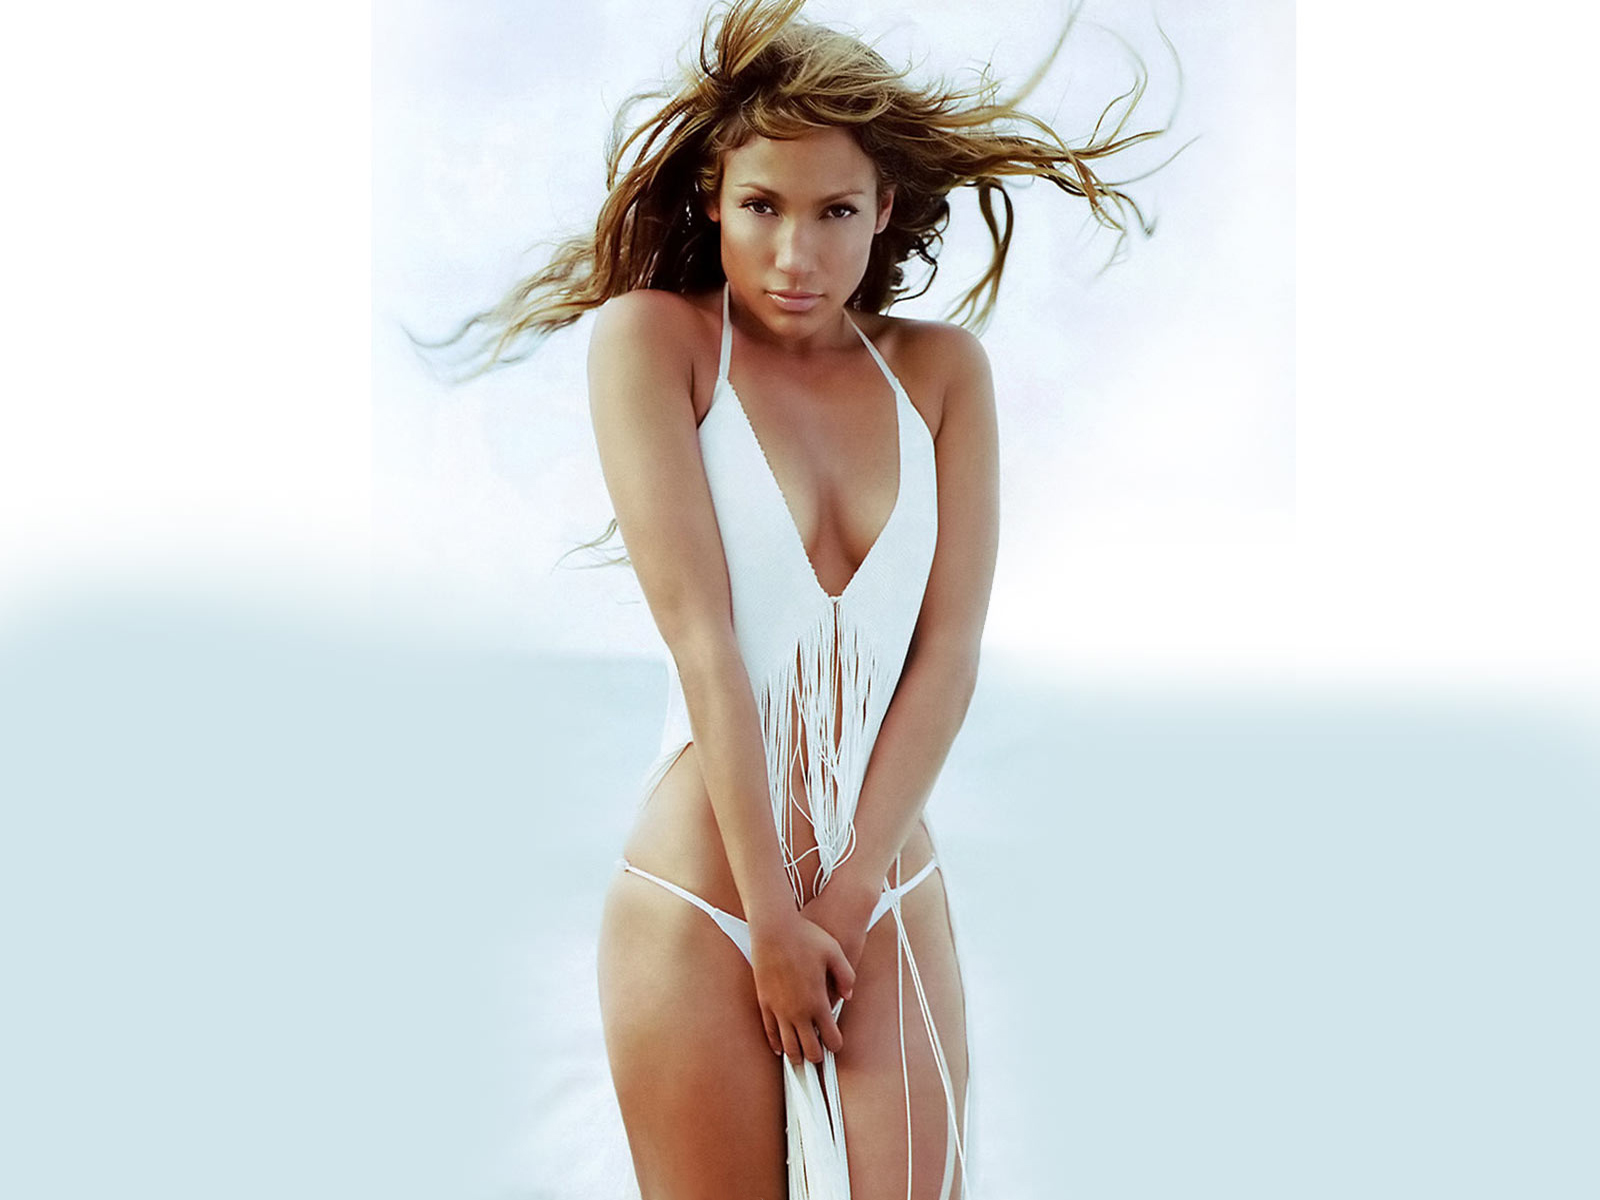 jennifer lopez hot Actress wallpapers 2587